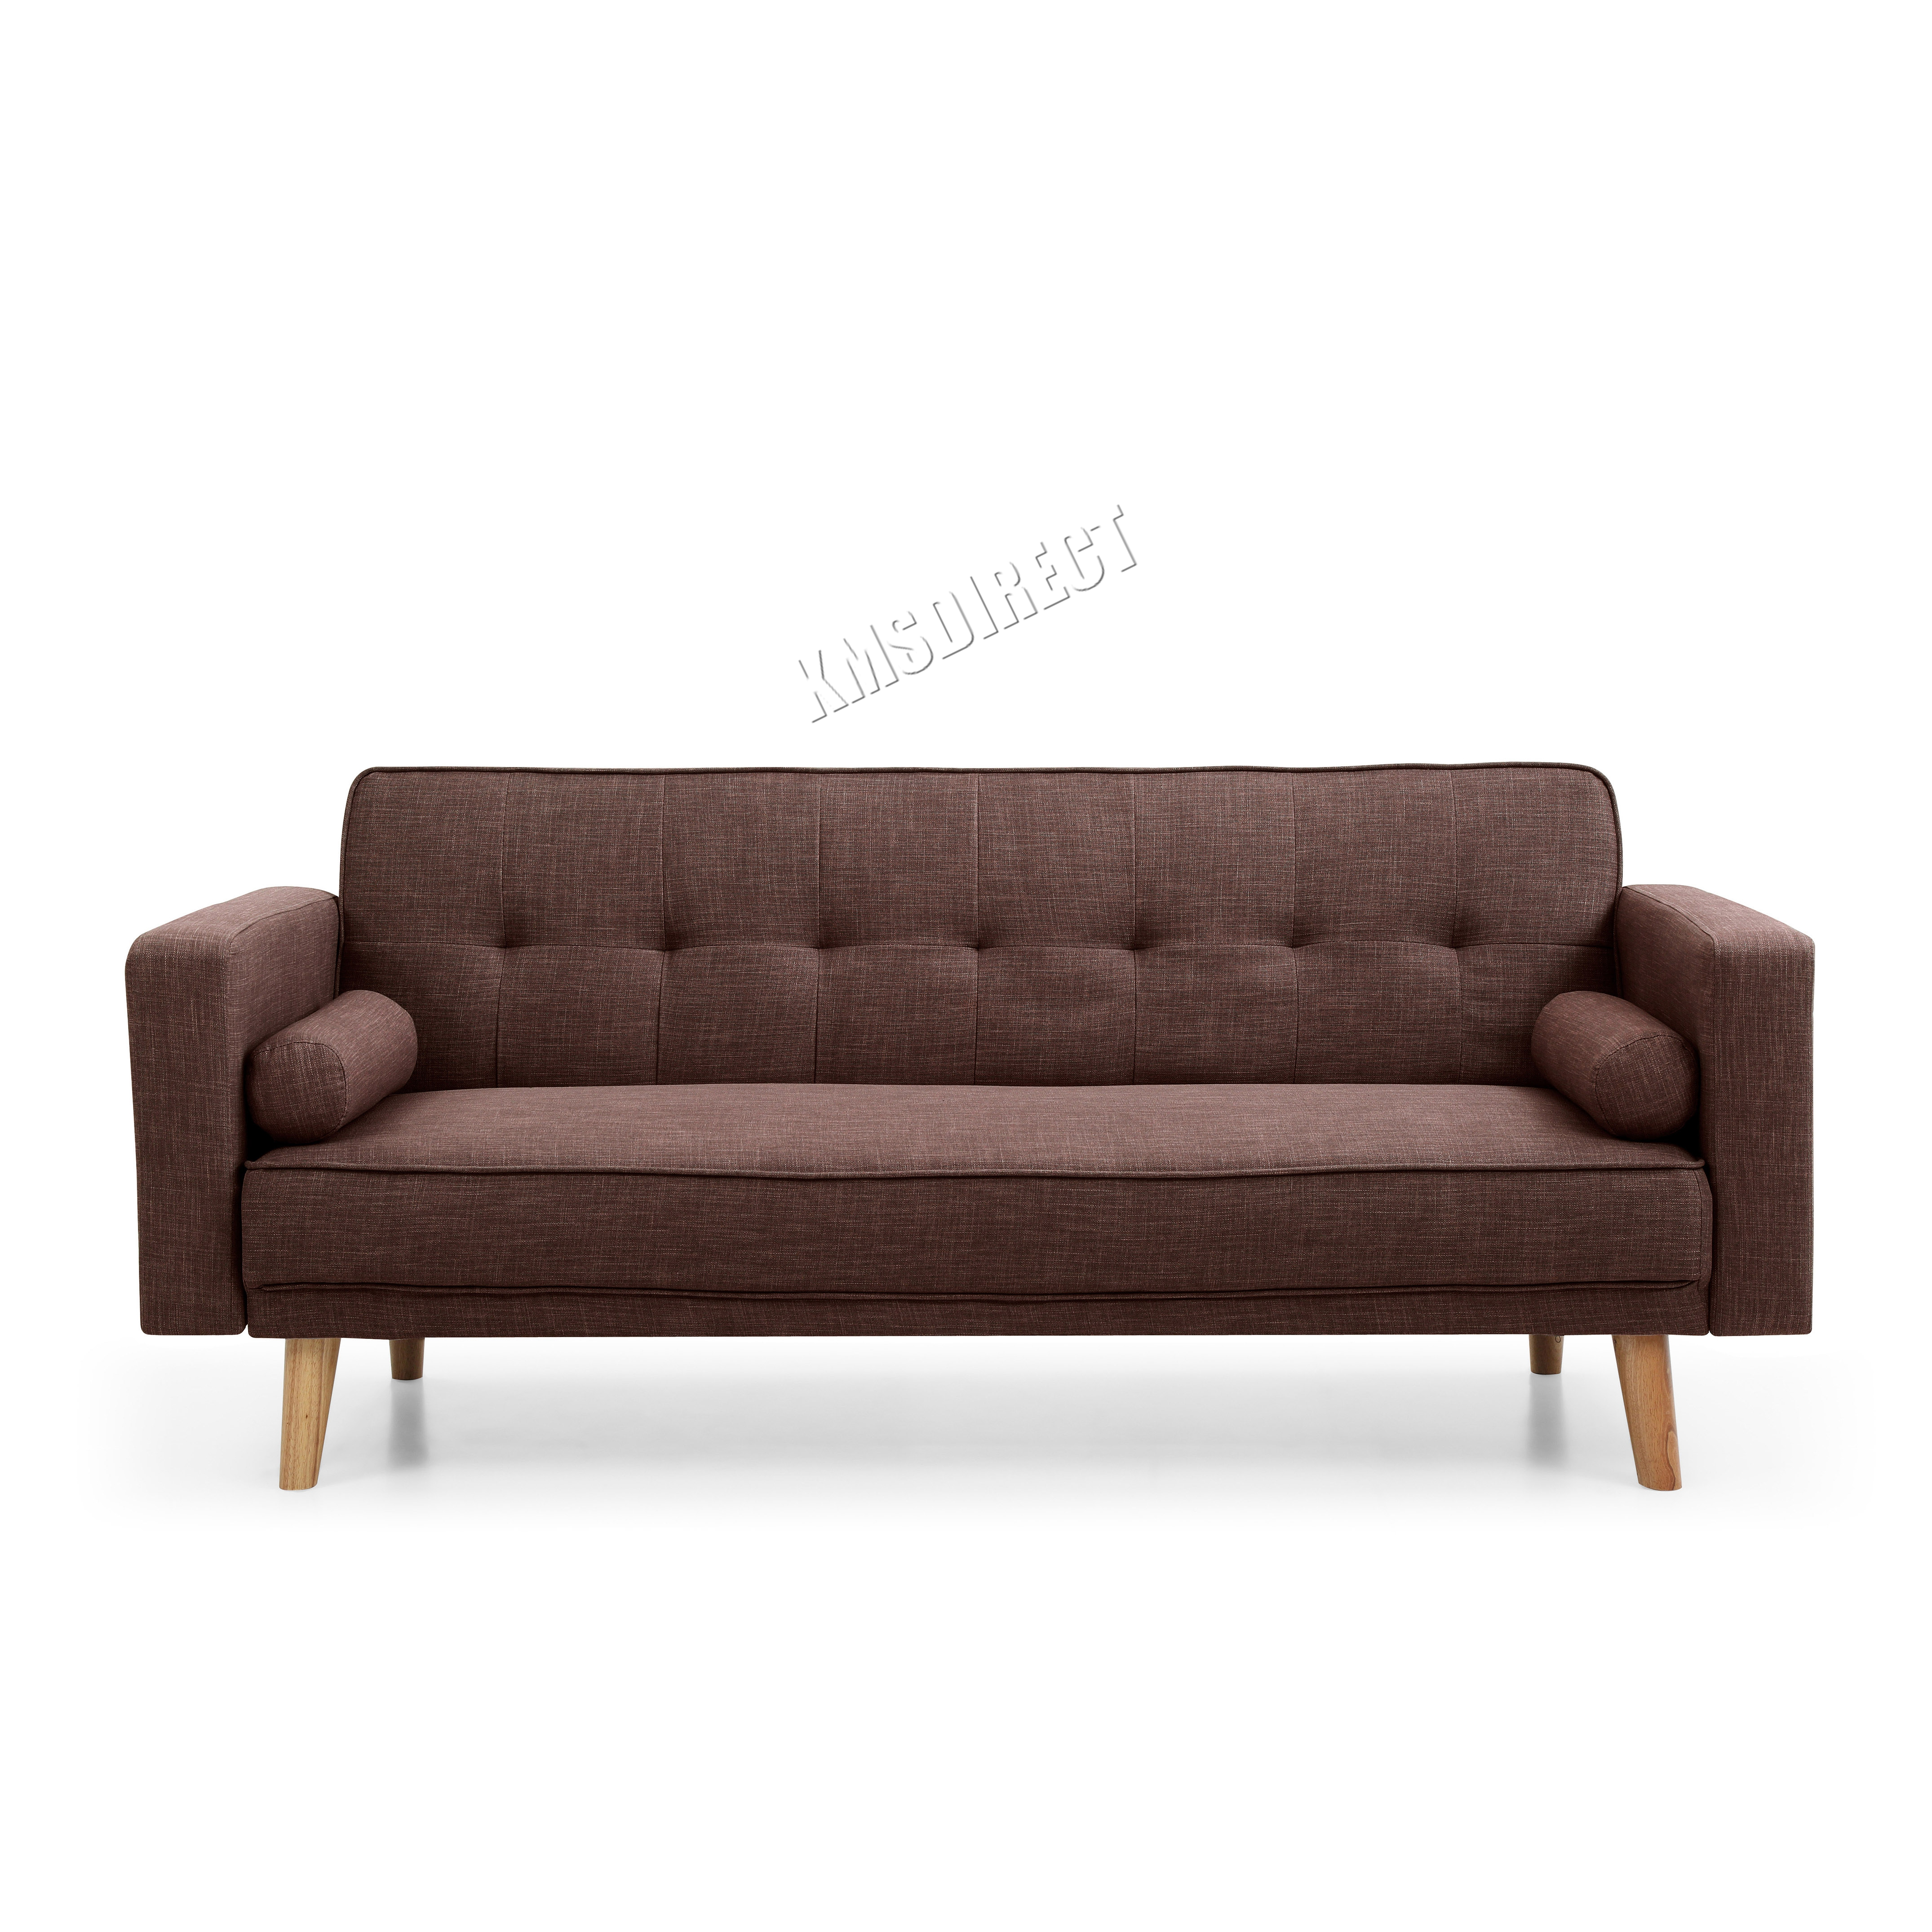 Westwood fabric sofa bed 3 seater couch luxury modern home for Sofas de lujo